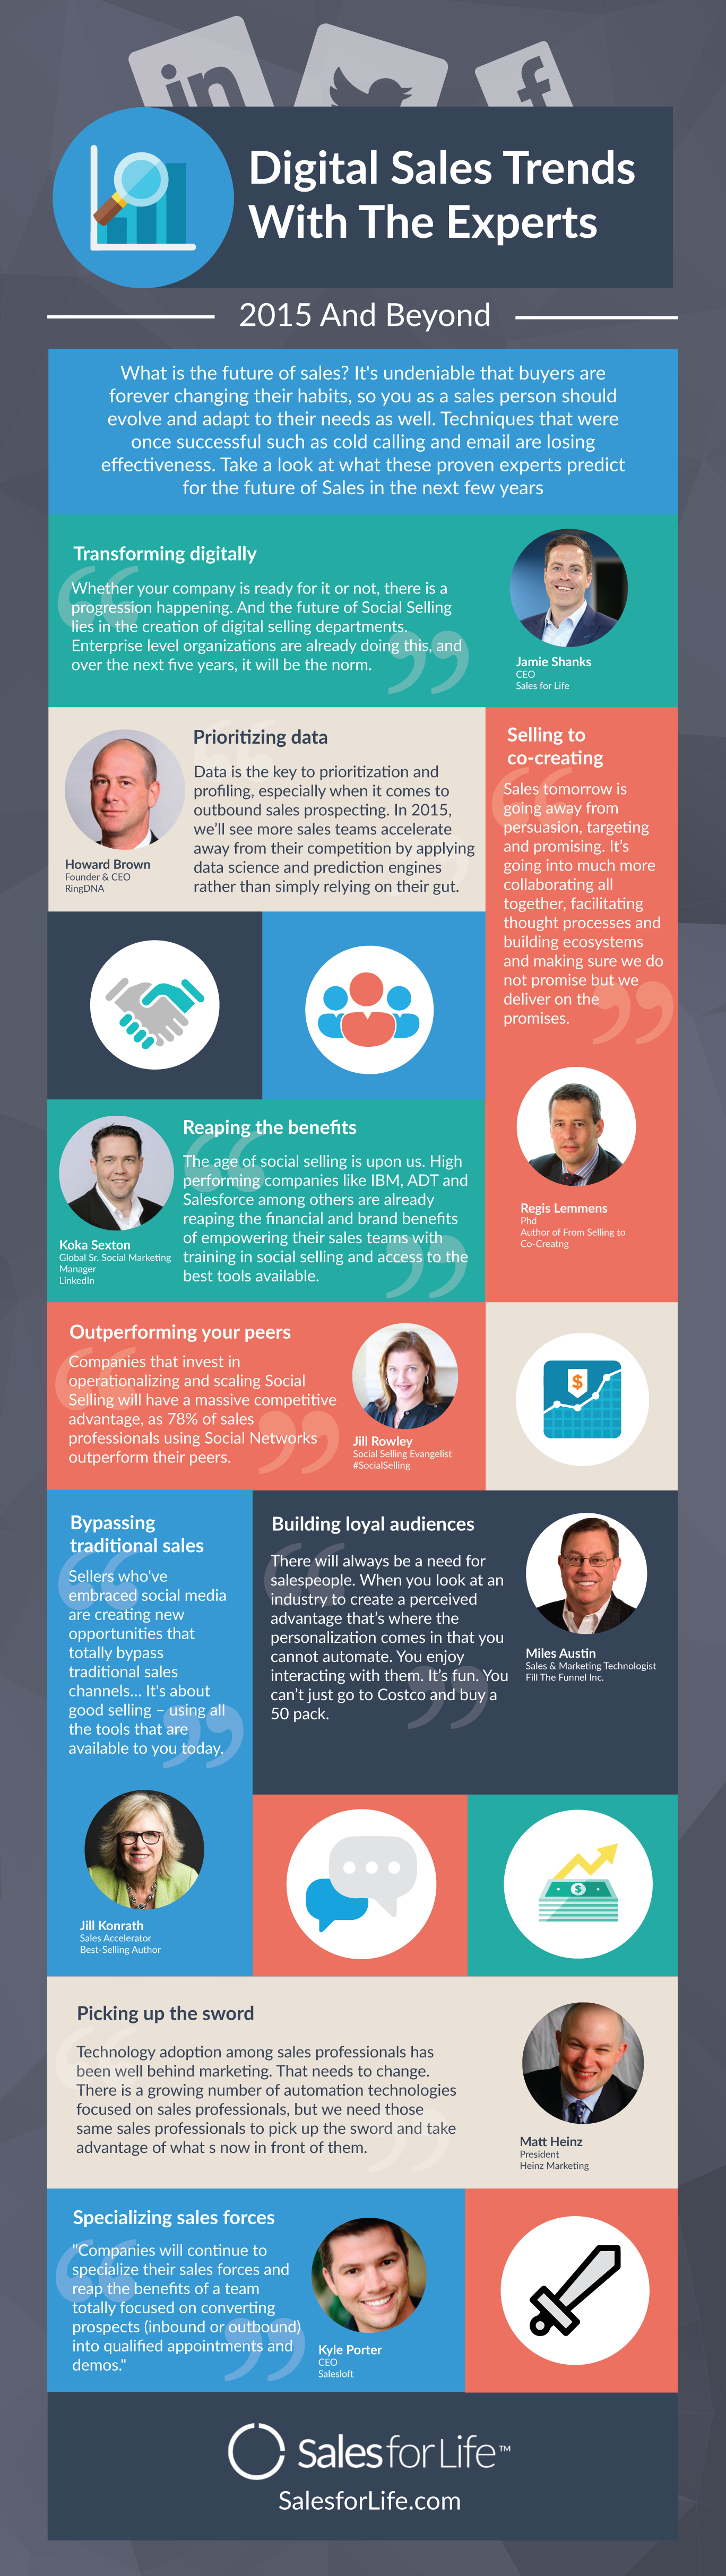 The Experts Speak 9 Sales Predictions That We Cant Ignore [Infographic]